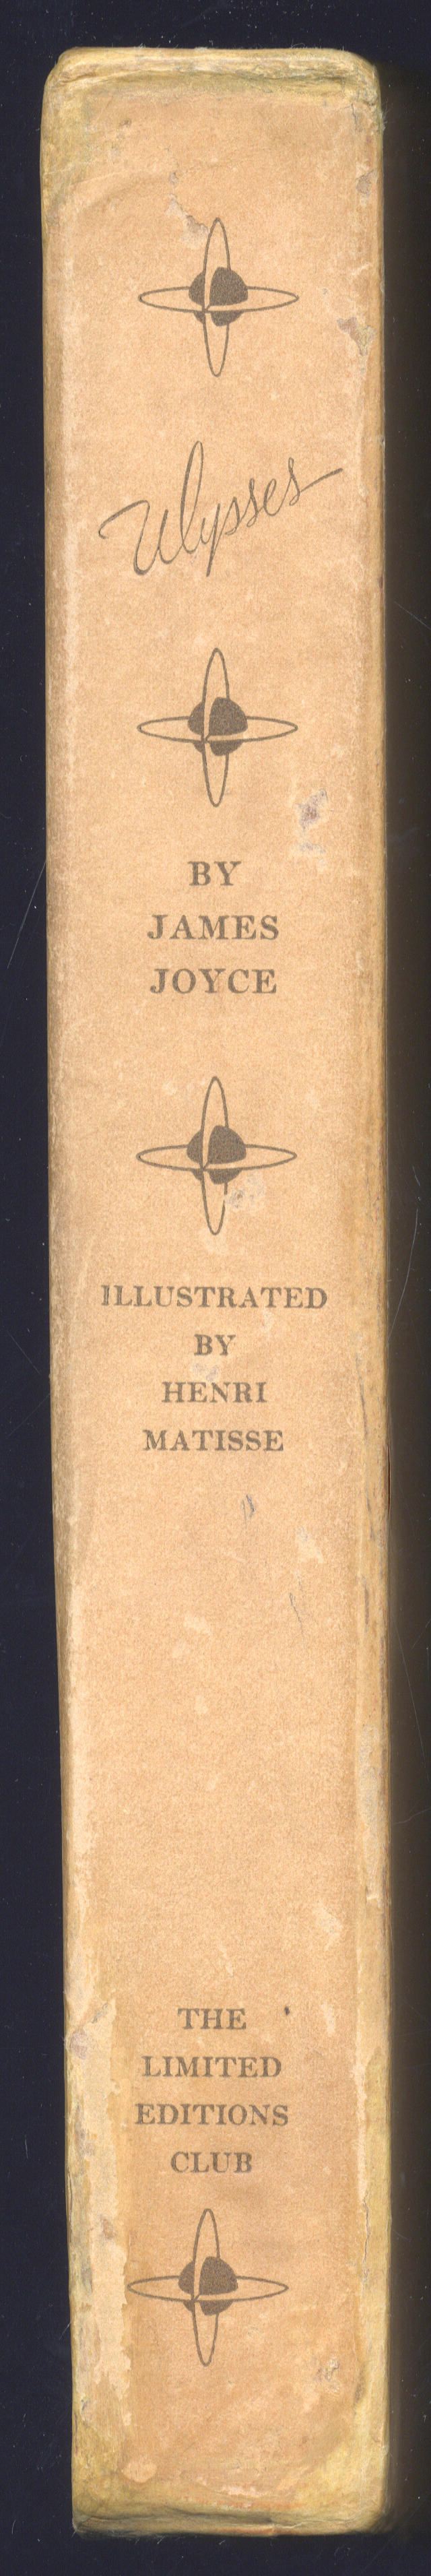 JOYCE (JAMES) AND HENRI MATISSE  Ulysses... with an Introduction by Stuart Gilbert and Illustrations by Henri Matisse, ONE OF 250 COPIES SIGNED BY BOTH AUTHOR AND ARTIS, FROM AN EDITION LIMITED TO 1500 COPIES,  New York, Limited Editions Club, 1935